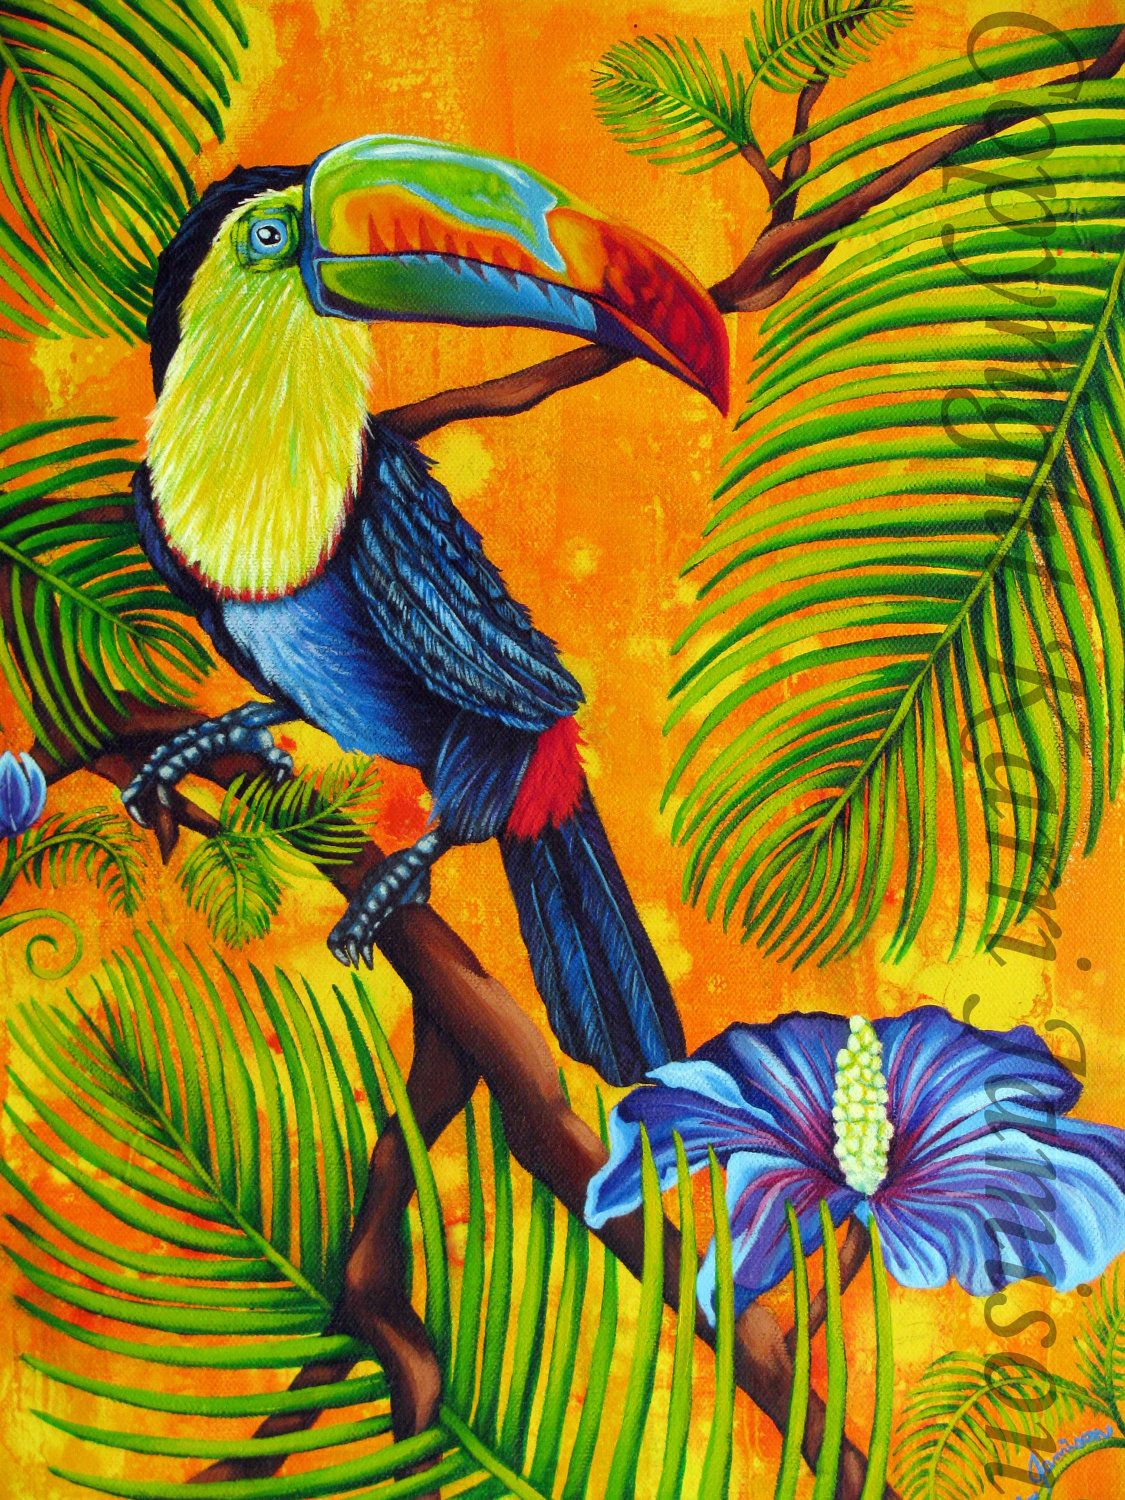 Tropical Artwork Karri Jamison Original Painting Title Tropical By